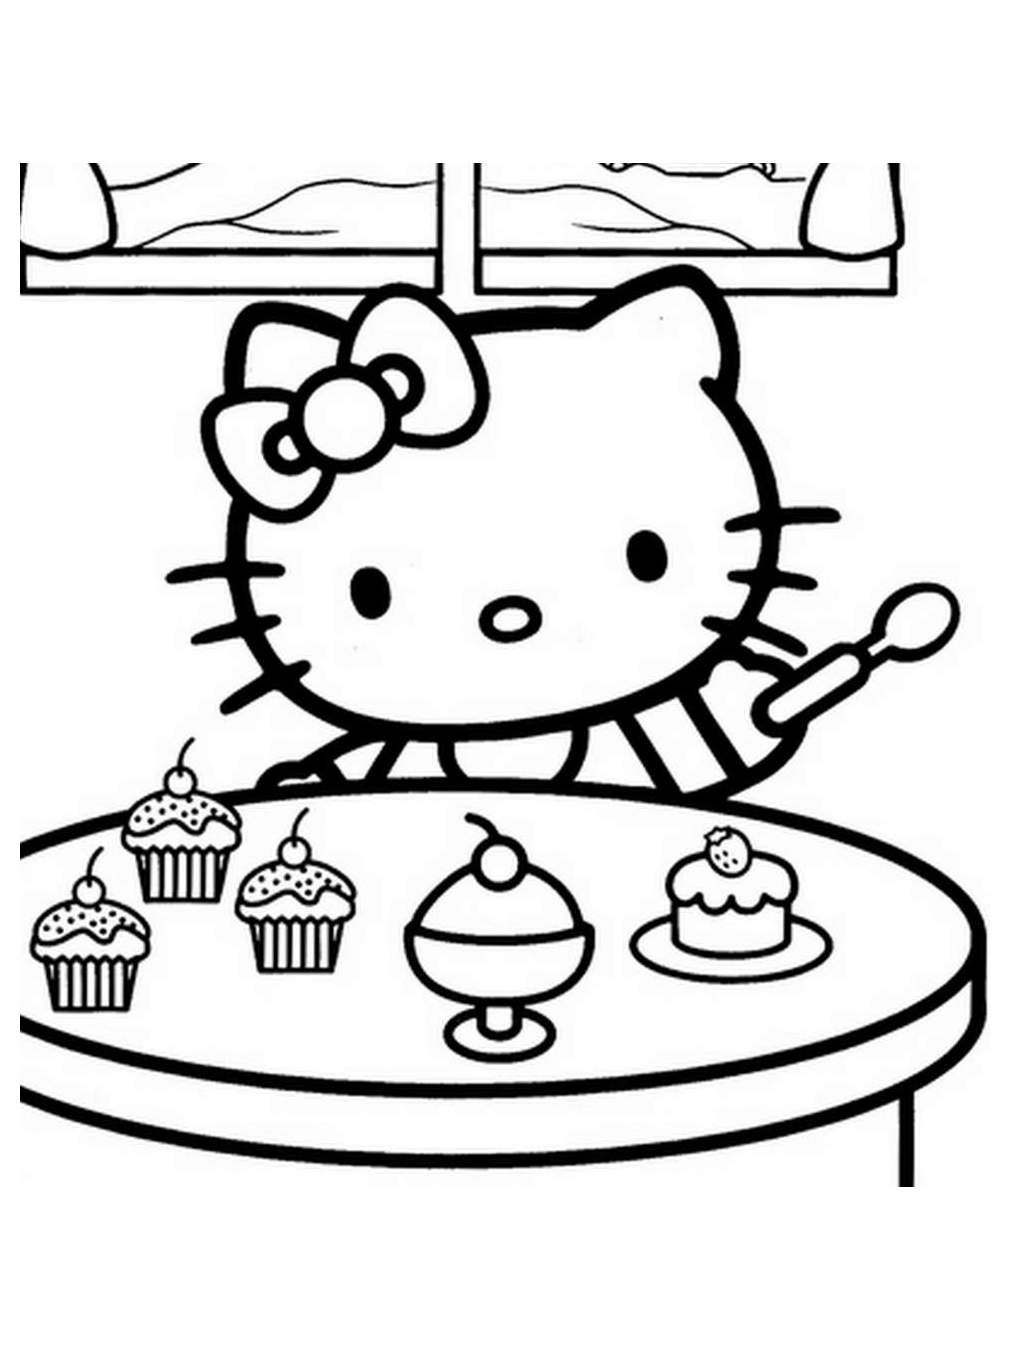 coloring hello kitty hello kitty free to color for kids hello kitty kids kitty coloring hello